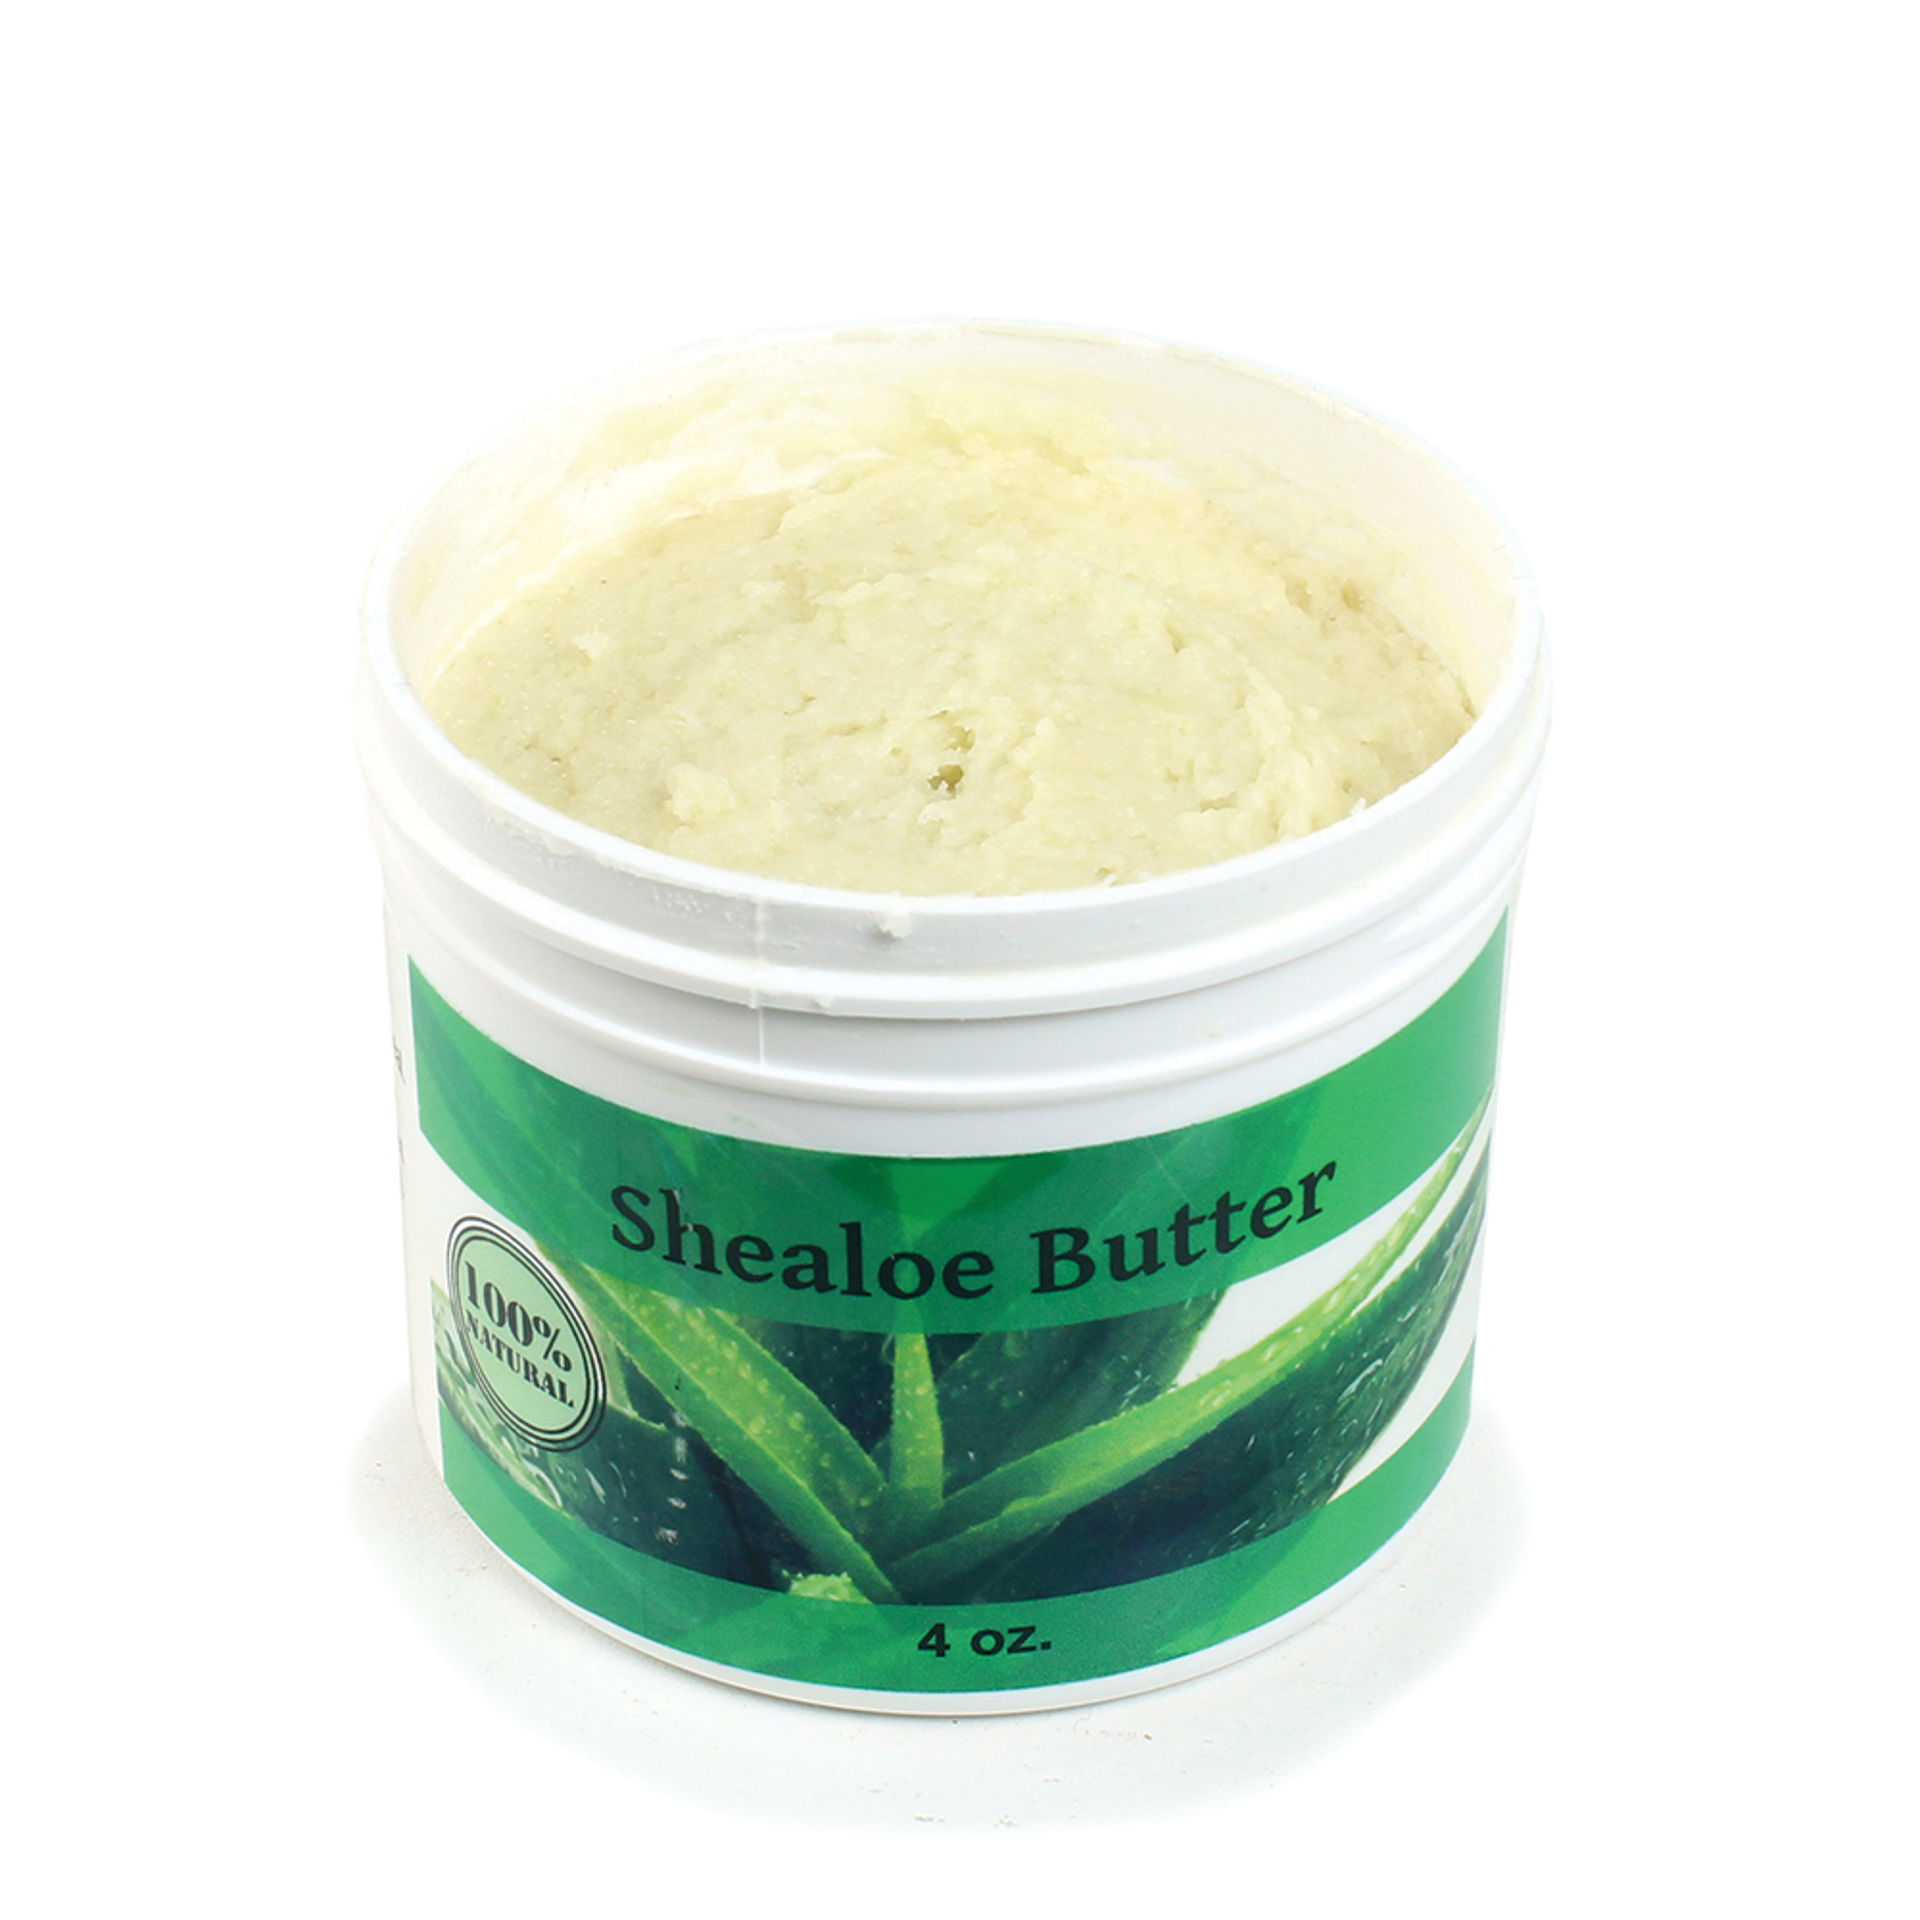 Picture of Shealoe Butter: 4 oz.